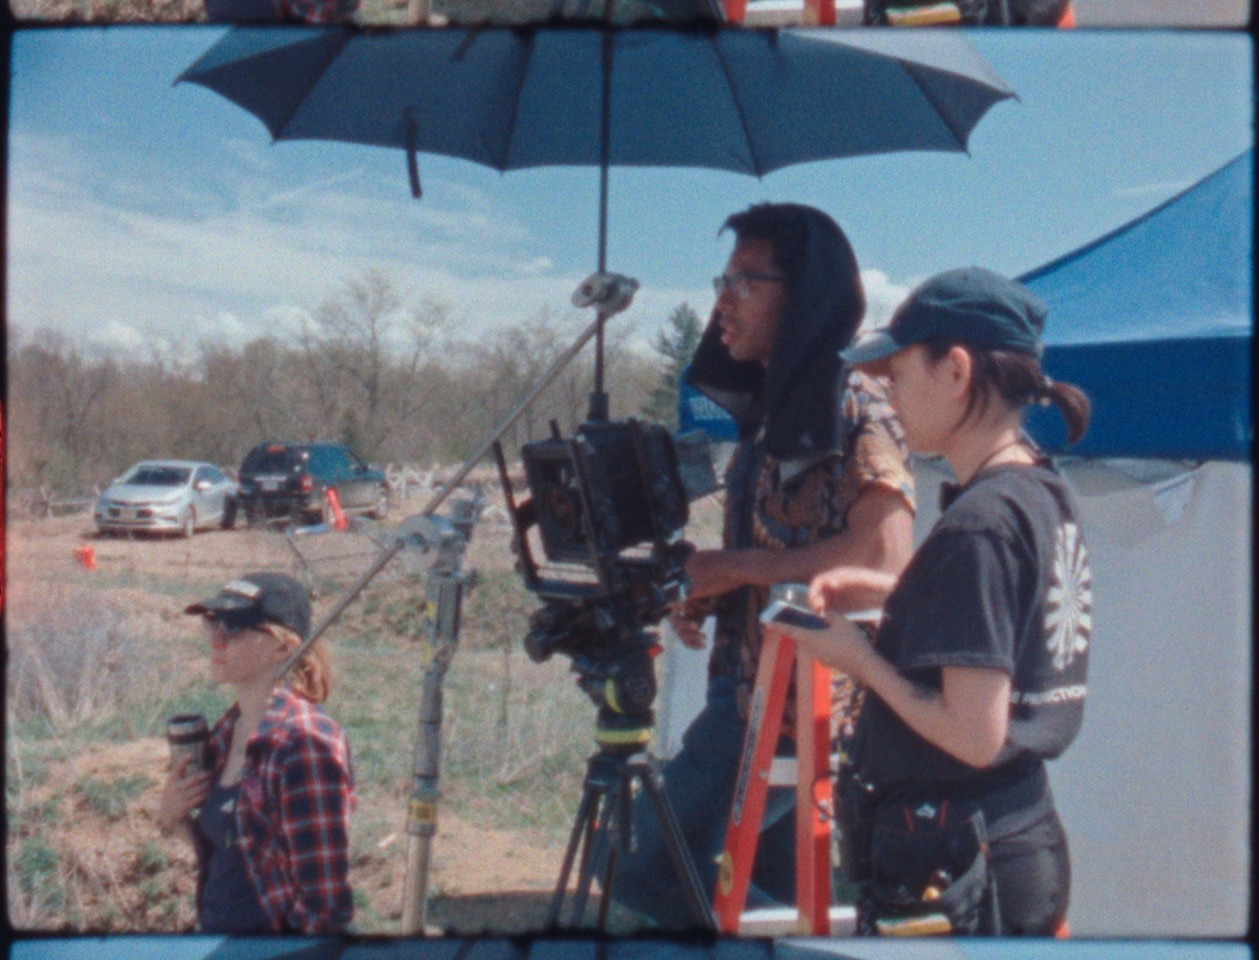 Super 8 BTS footage. That's me behind the camera, wearing the dark cloth on set of one of my shoots along with Kat Cameron, 1st AD, on the left and Sunnie Kim, 1st AC, on the right.